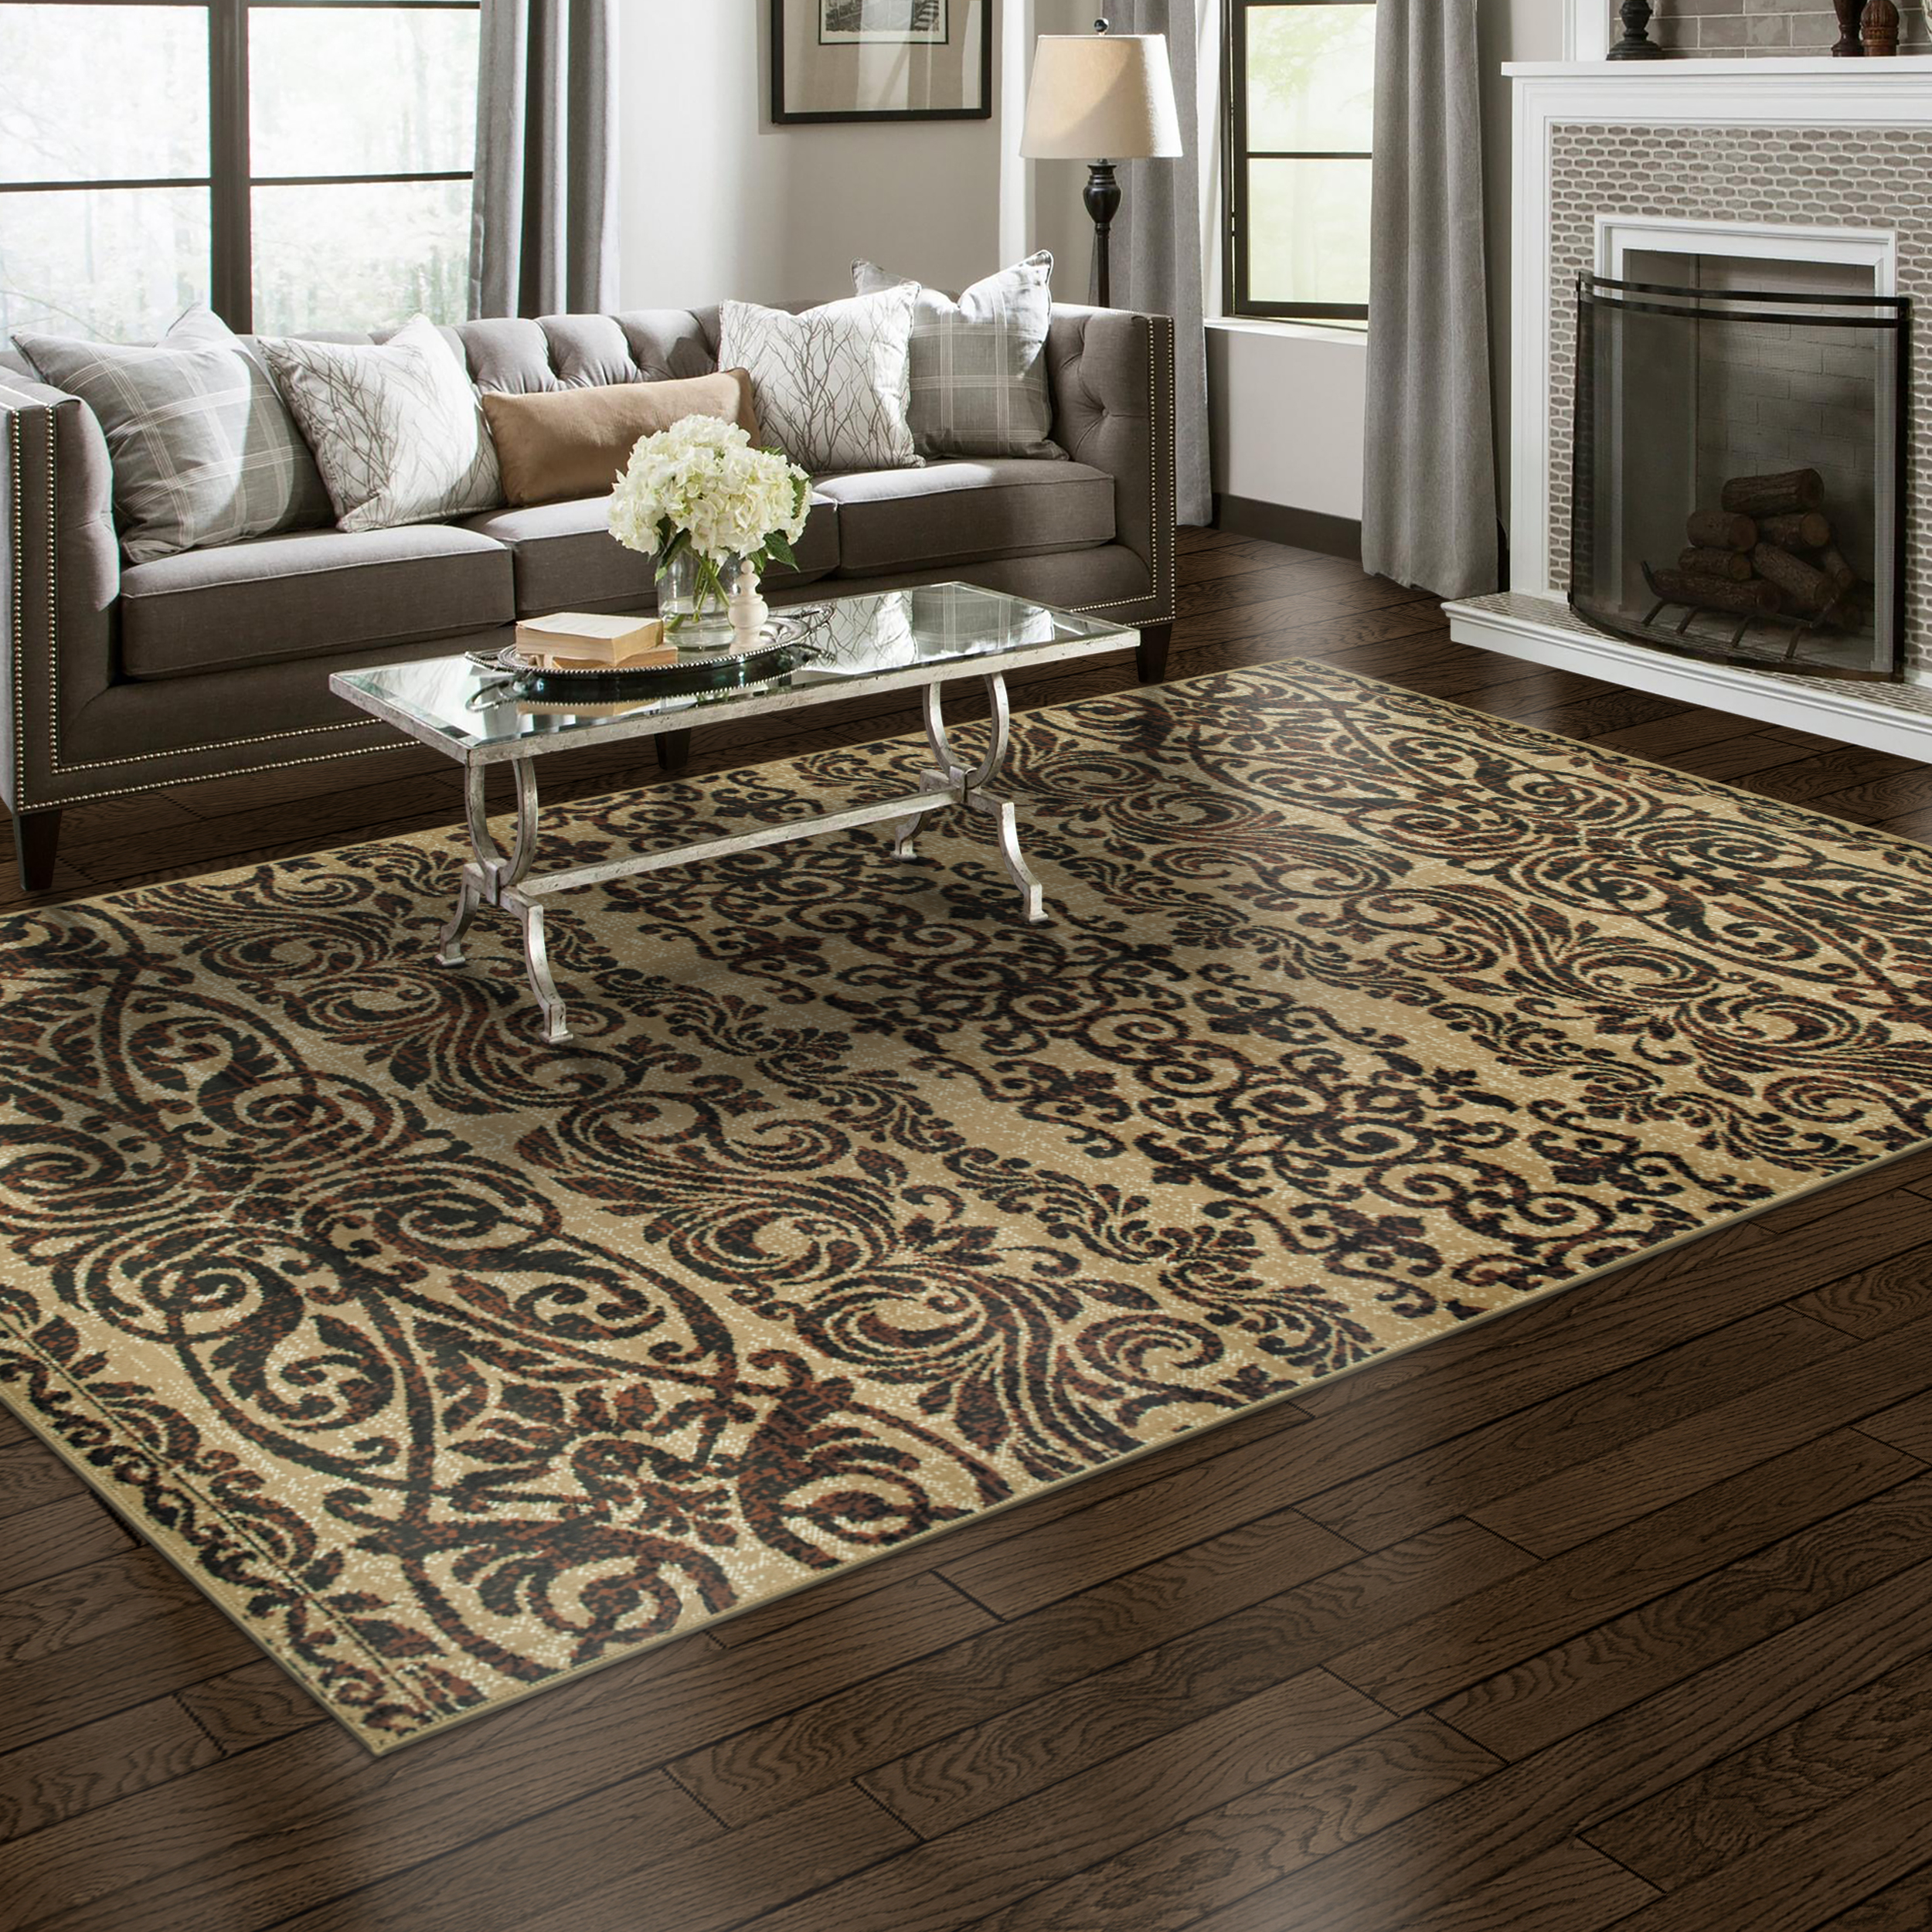 Sheffield-Floral-Area-Rug-Collection thumbnail 3